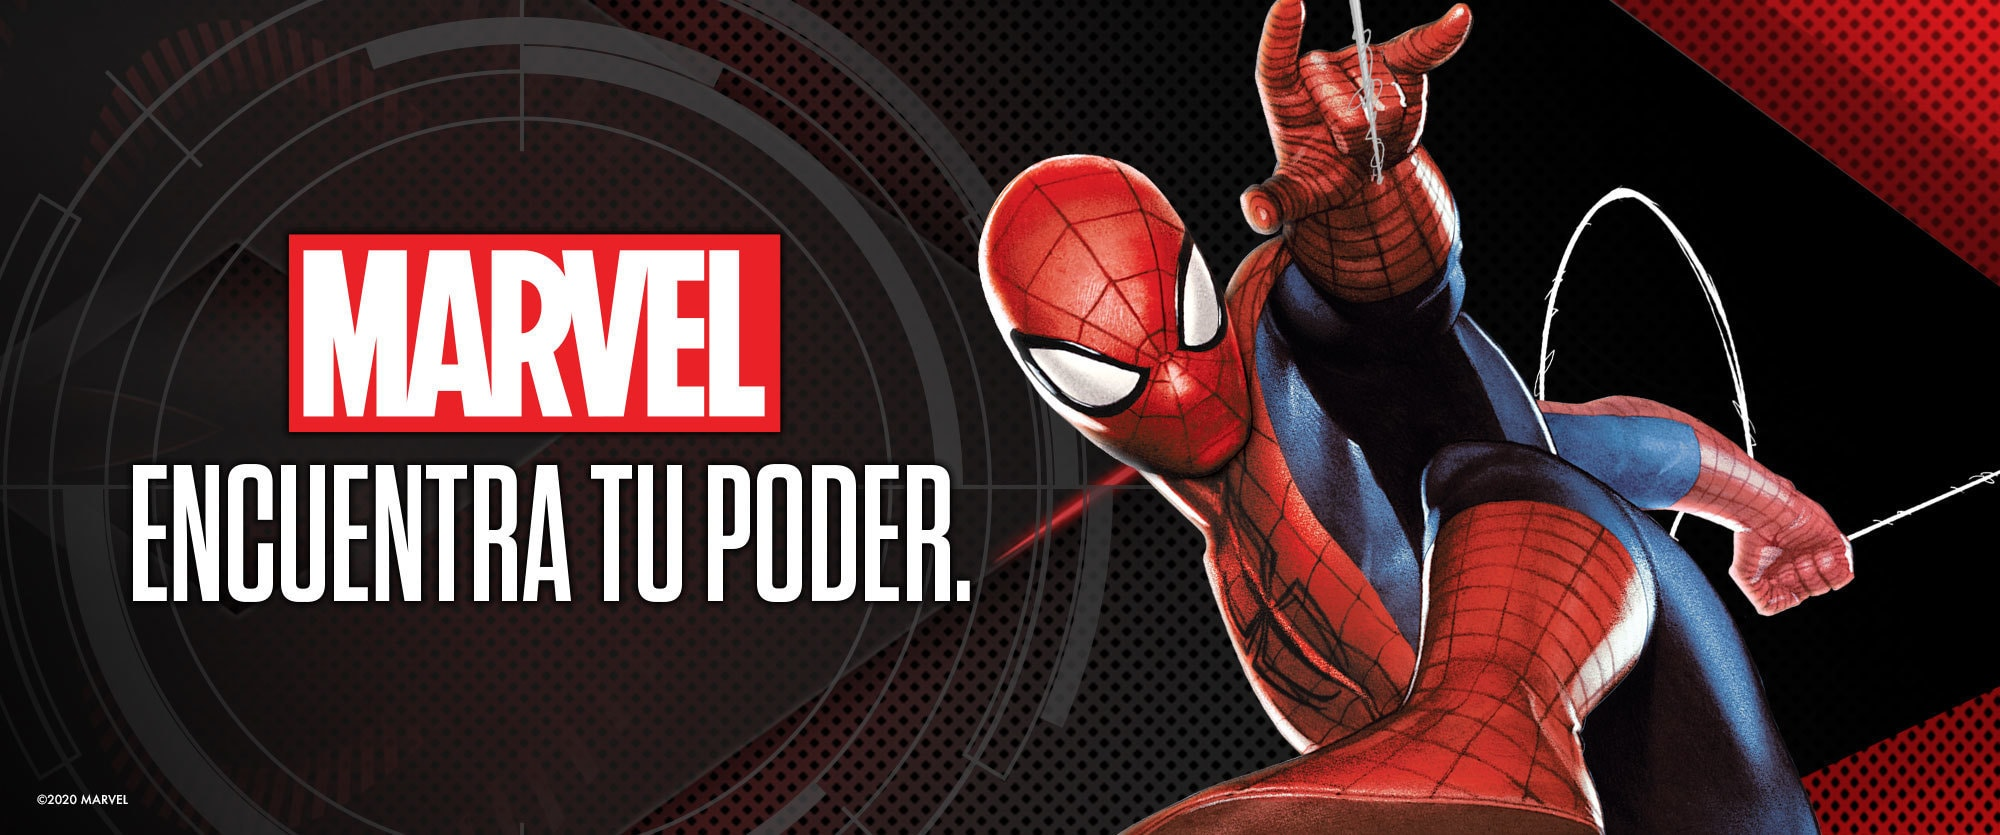 Top_ShopDisney_Marvel_Jun20_MX